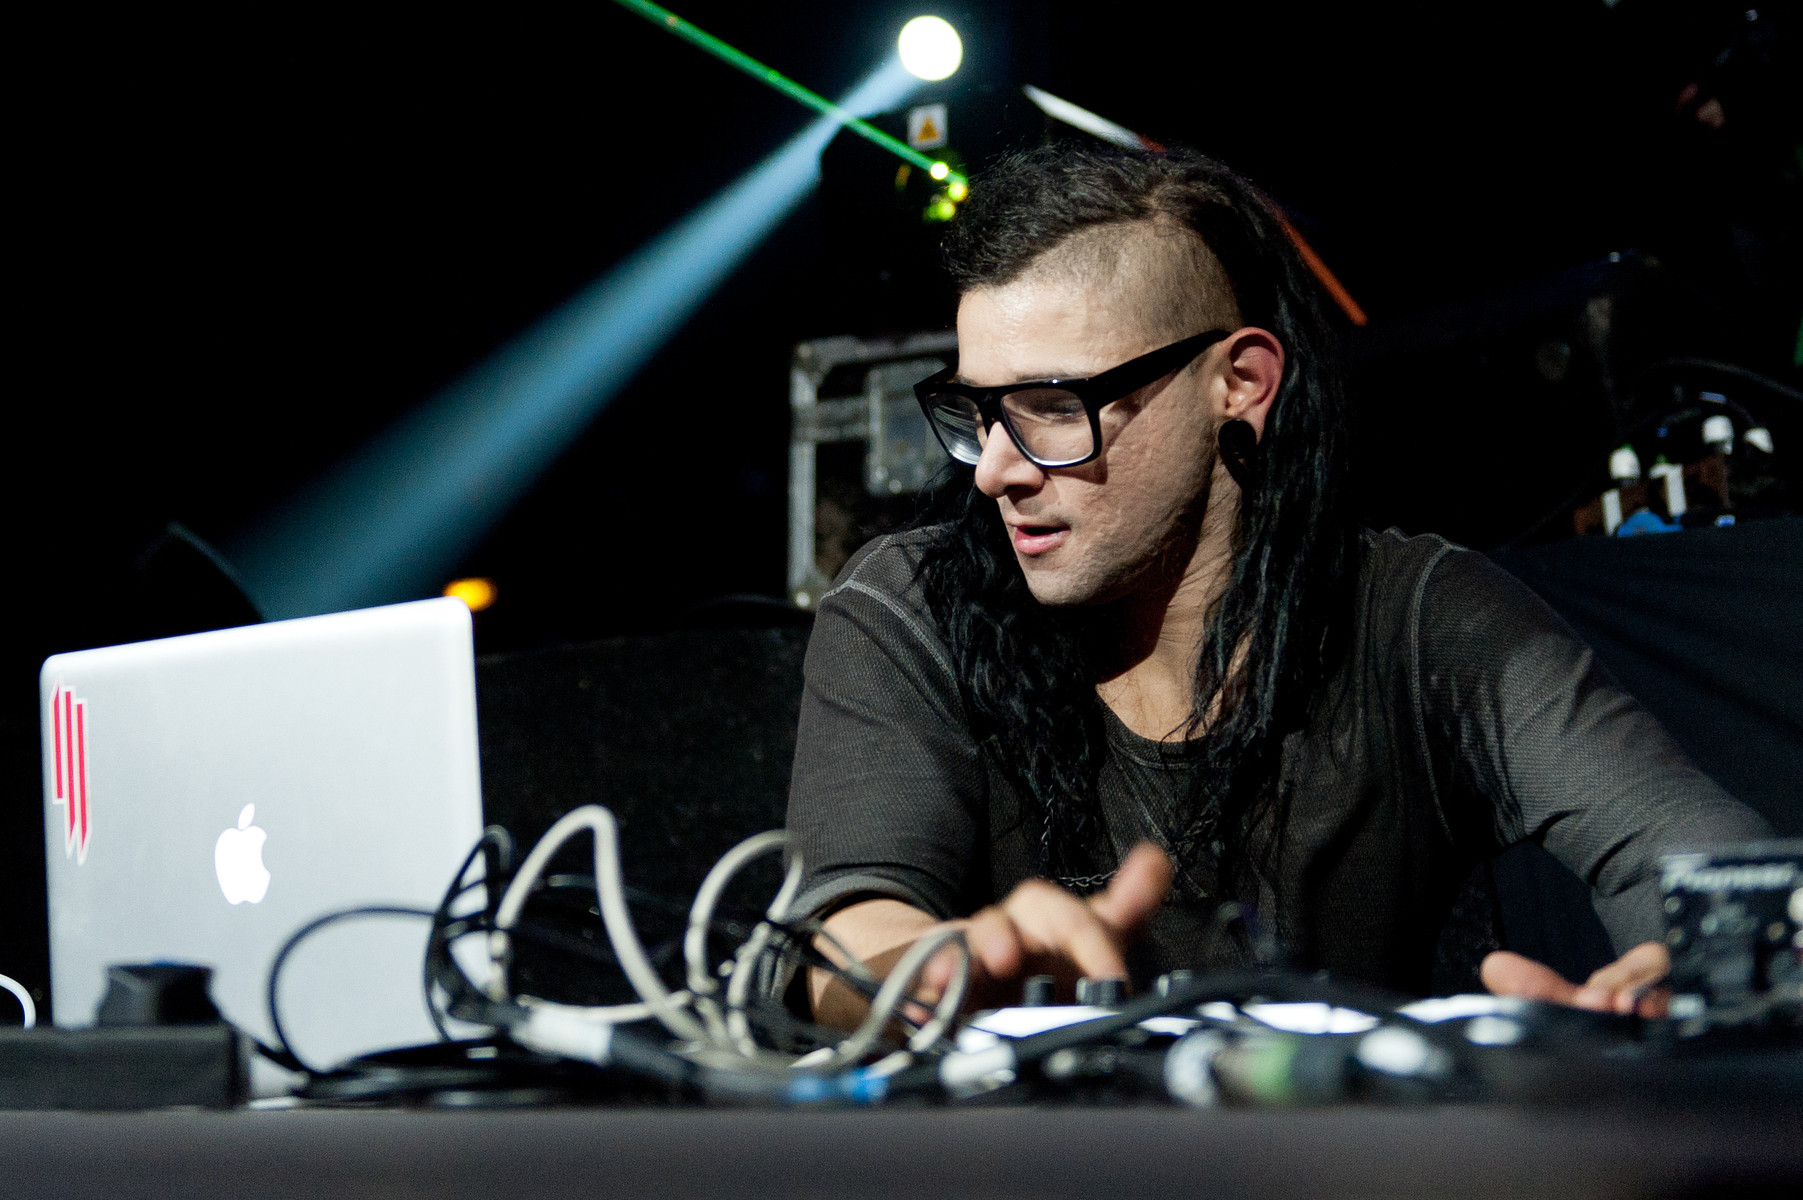 The Grammy-award-winning electronic musician Skrillex